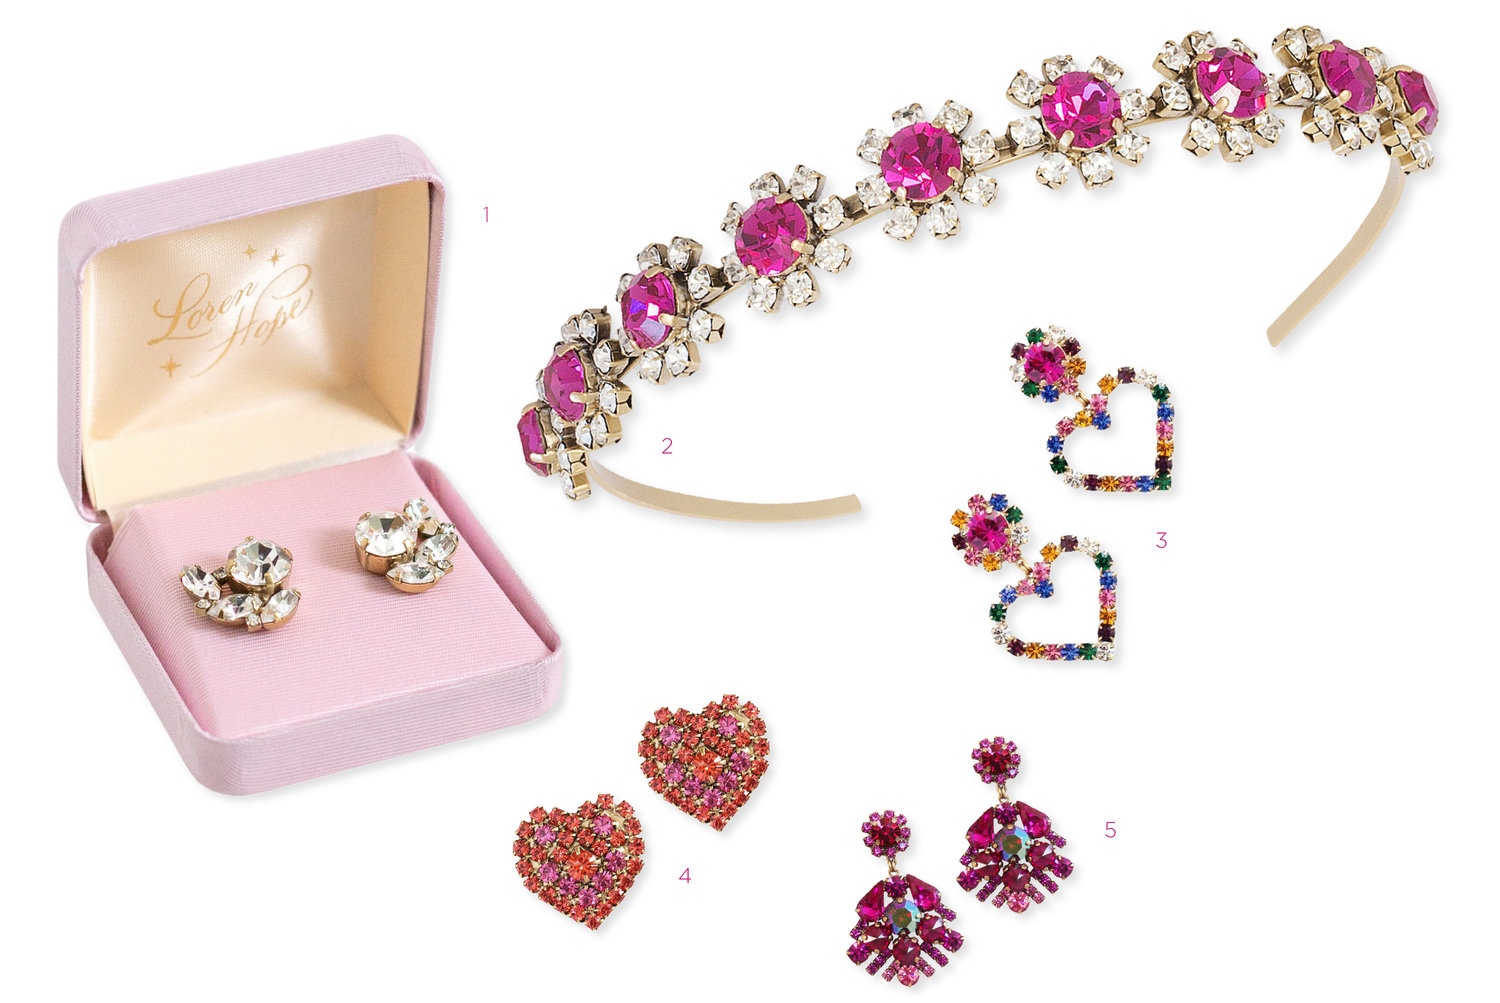 1. Small Vintage Style Gift Box (For Studs), $5 |